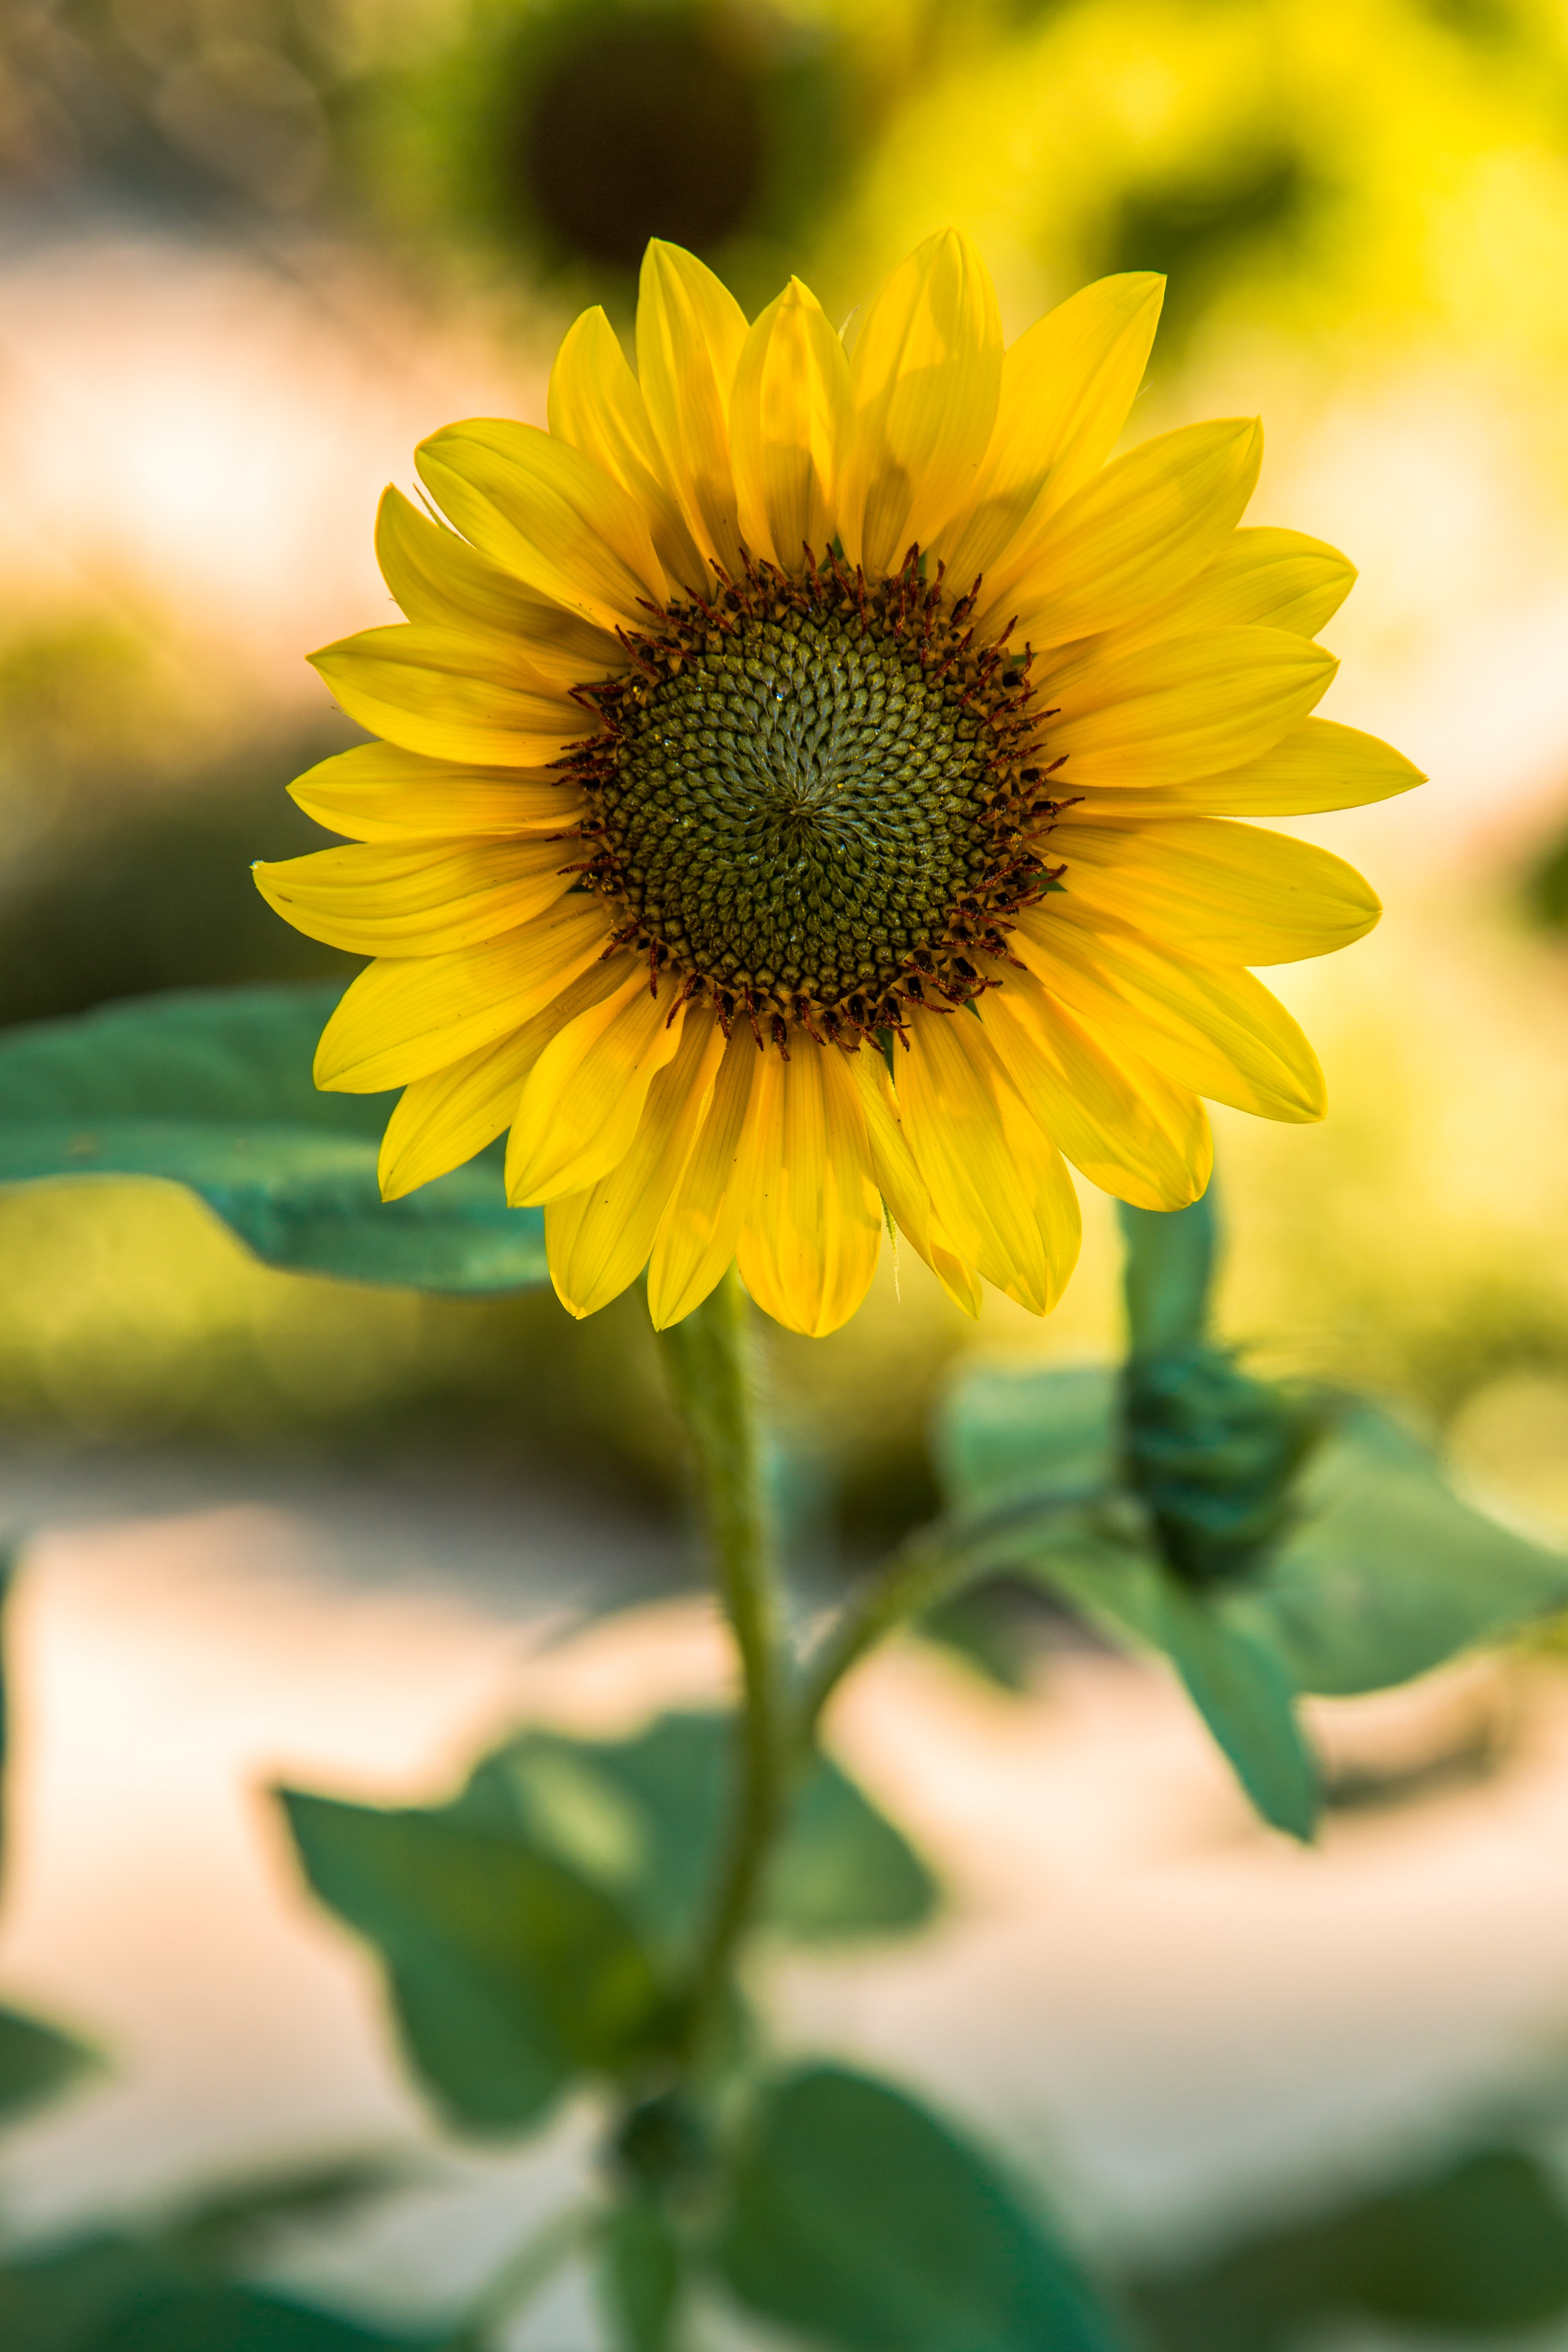 closeup photography of sunflower